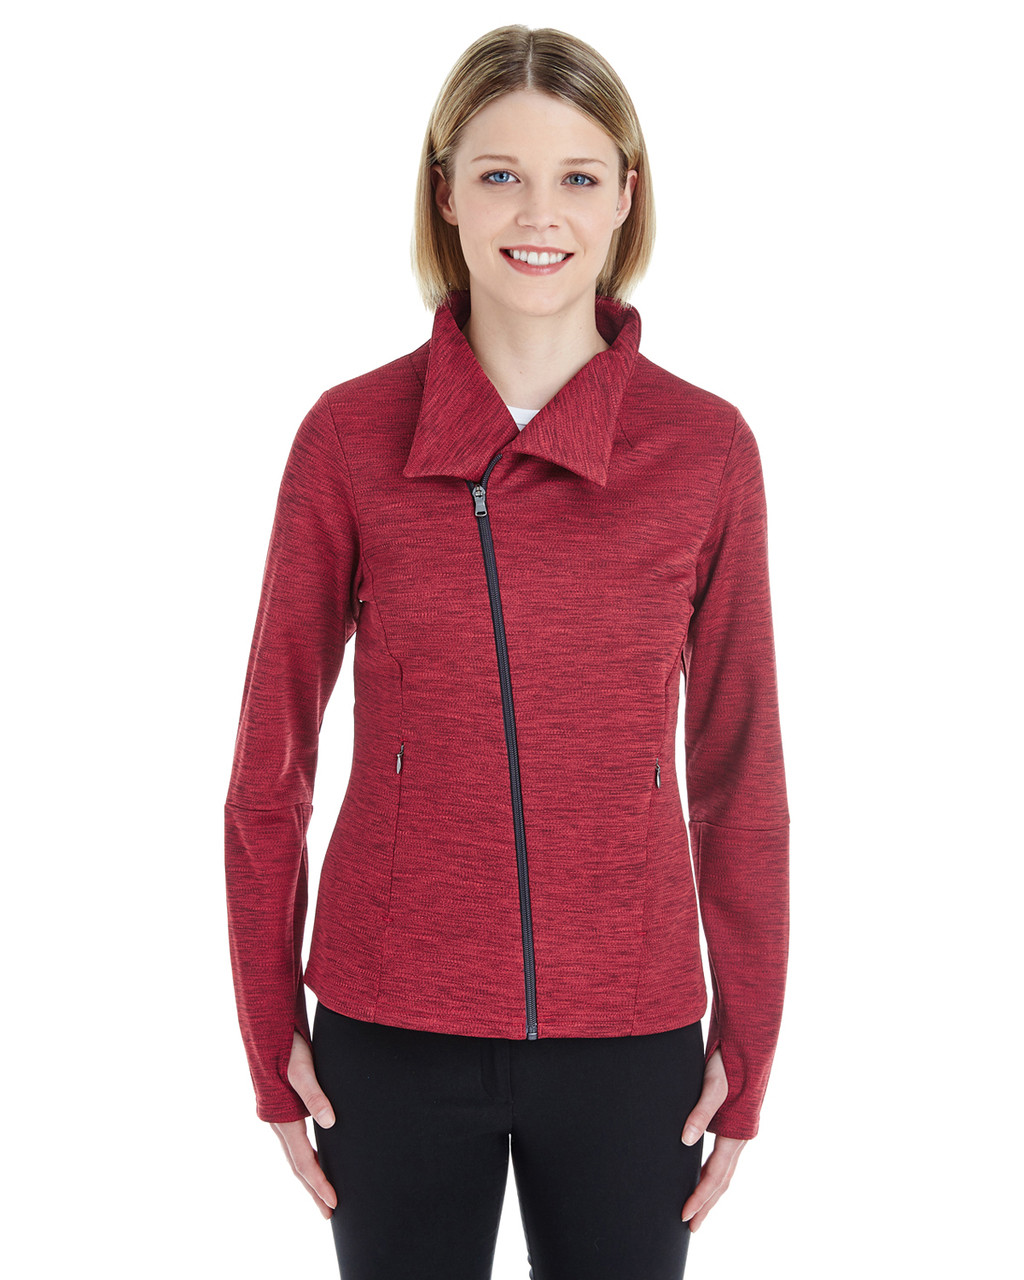 Olympic Red/Carbon - NE704W Ash City - North End Ladies' Amplify Melange Fleece Jacket | Blankclothing.ca